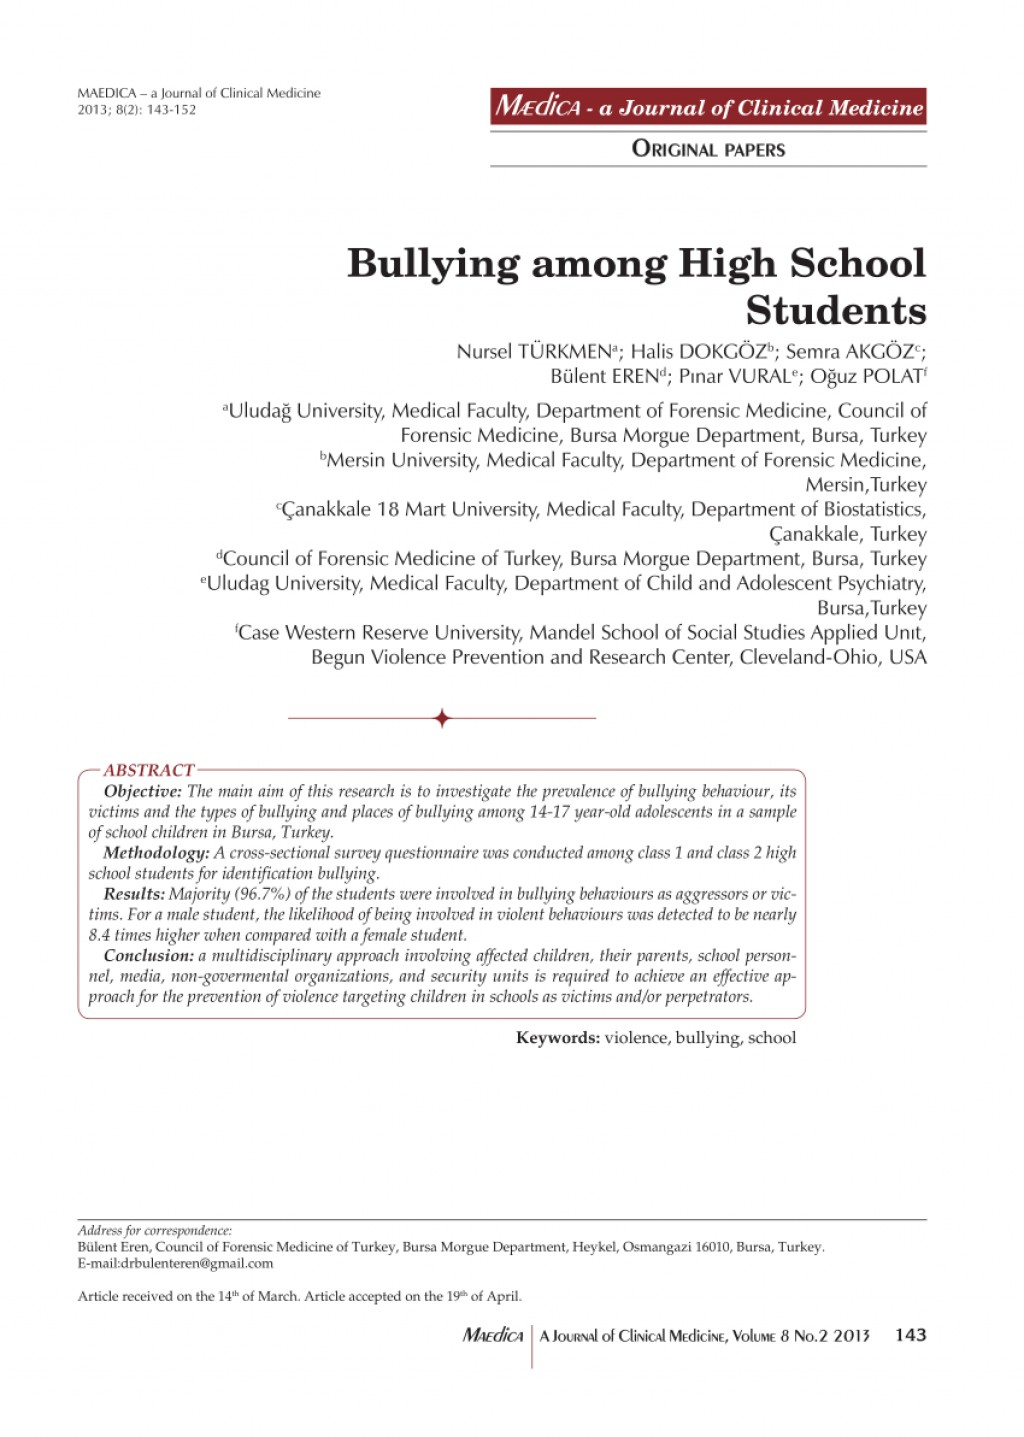 003 Research Paper About Bullying Phenomenal Slideshare Chapter 2 On Cyberbullying Pdf Large